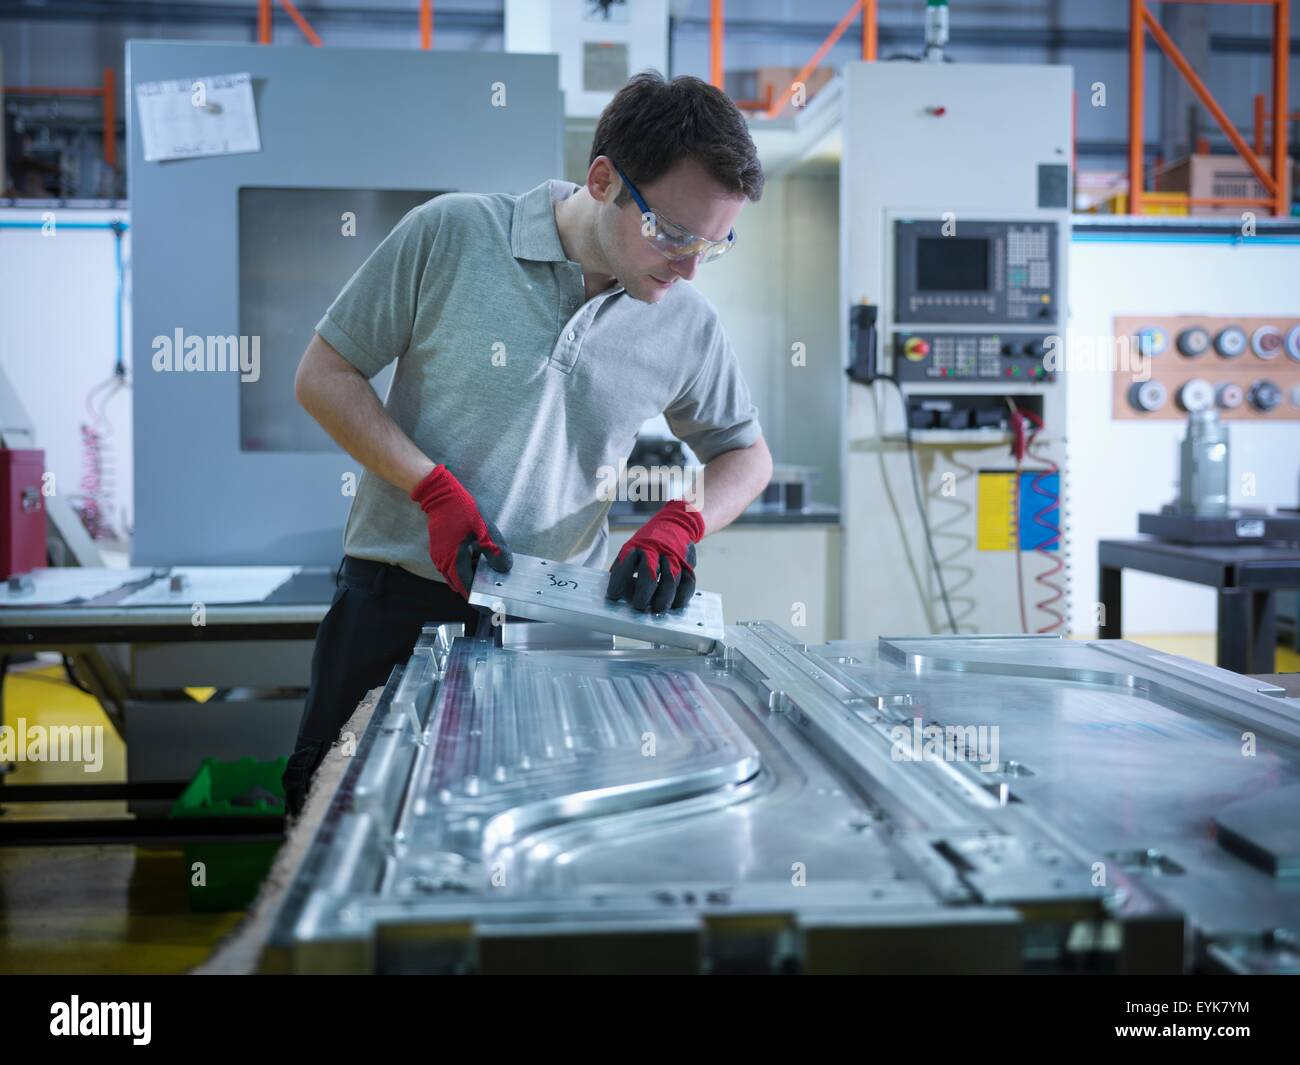 Worker inspecting part of mould in plastics factory - Stock Image